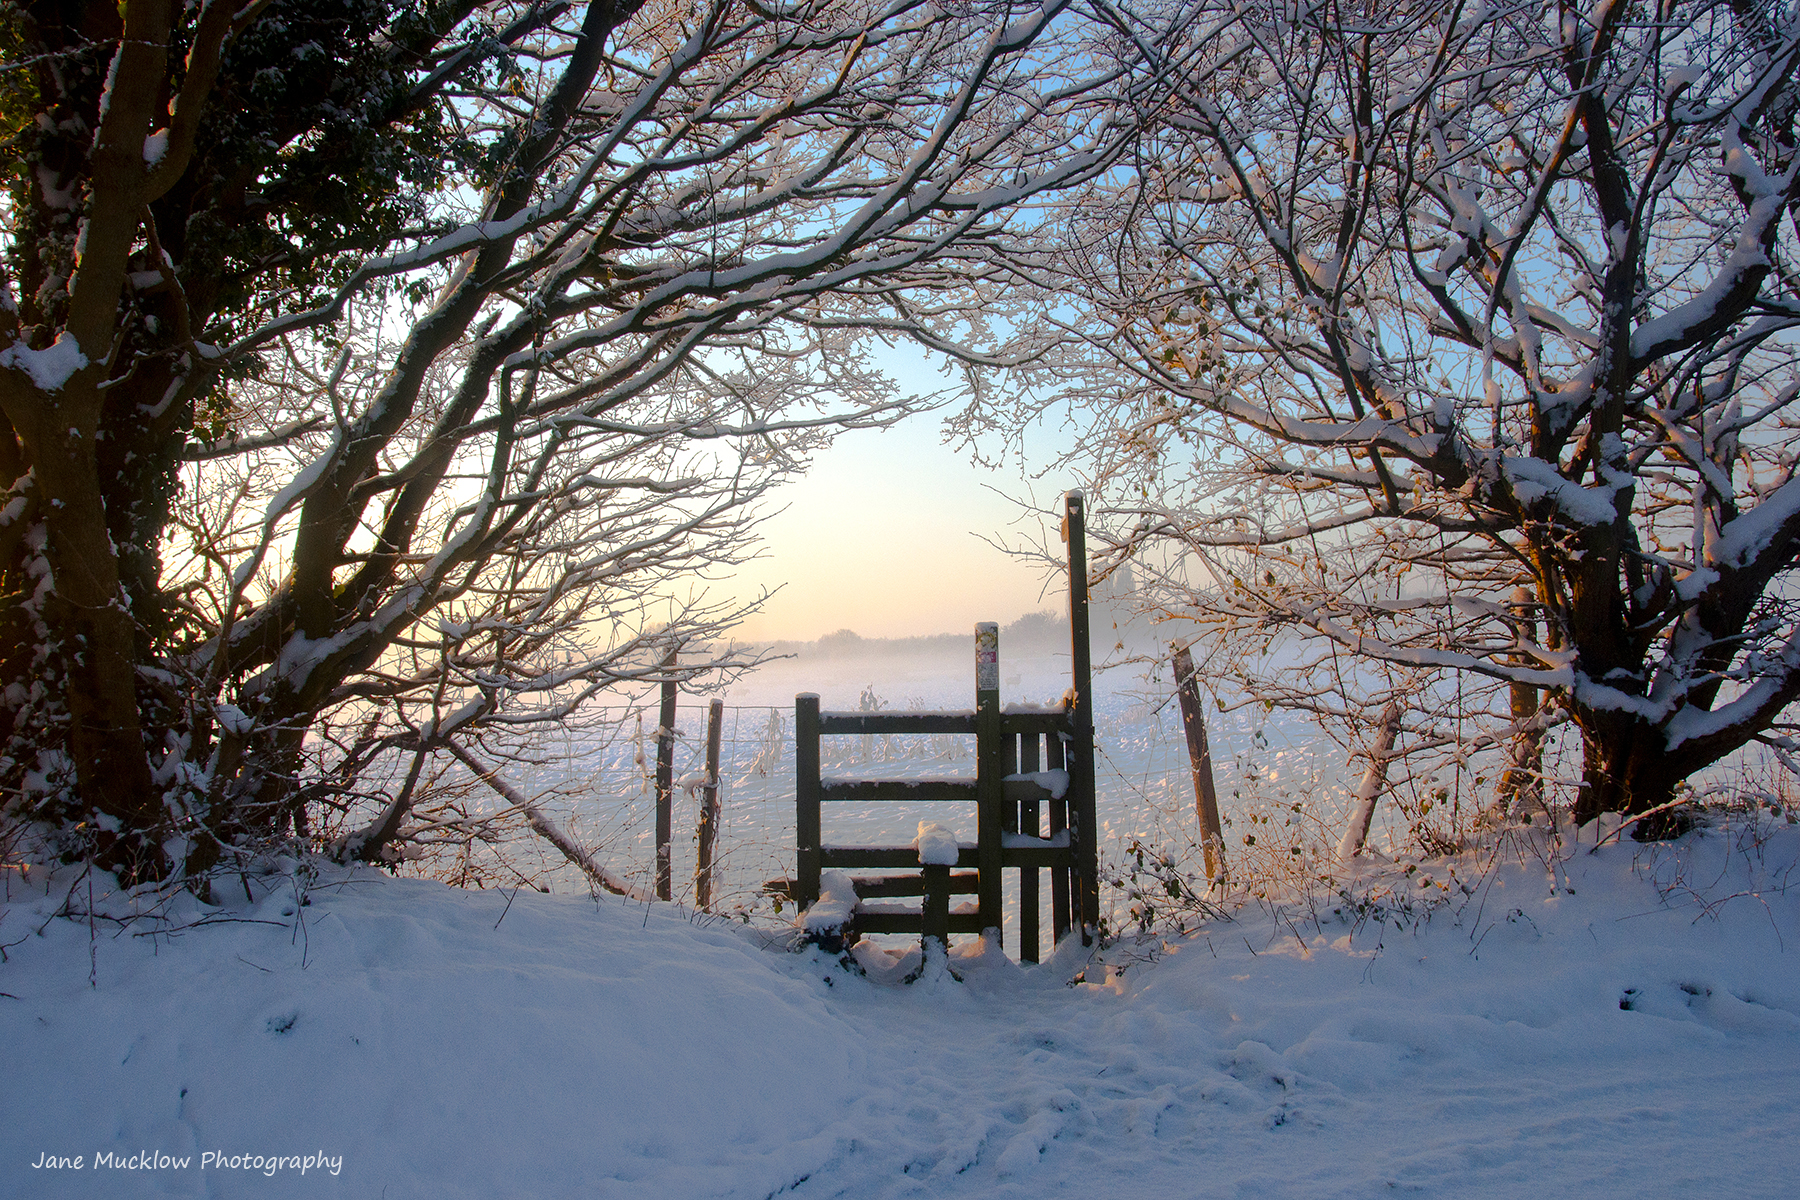 Photo of a snowy sunrise and style, Otford, by Jane Mucklow